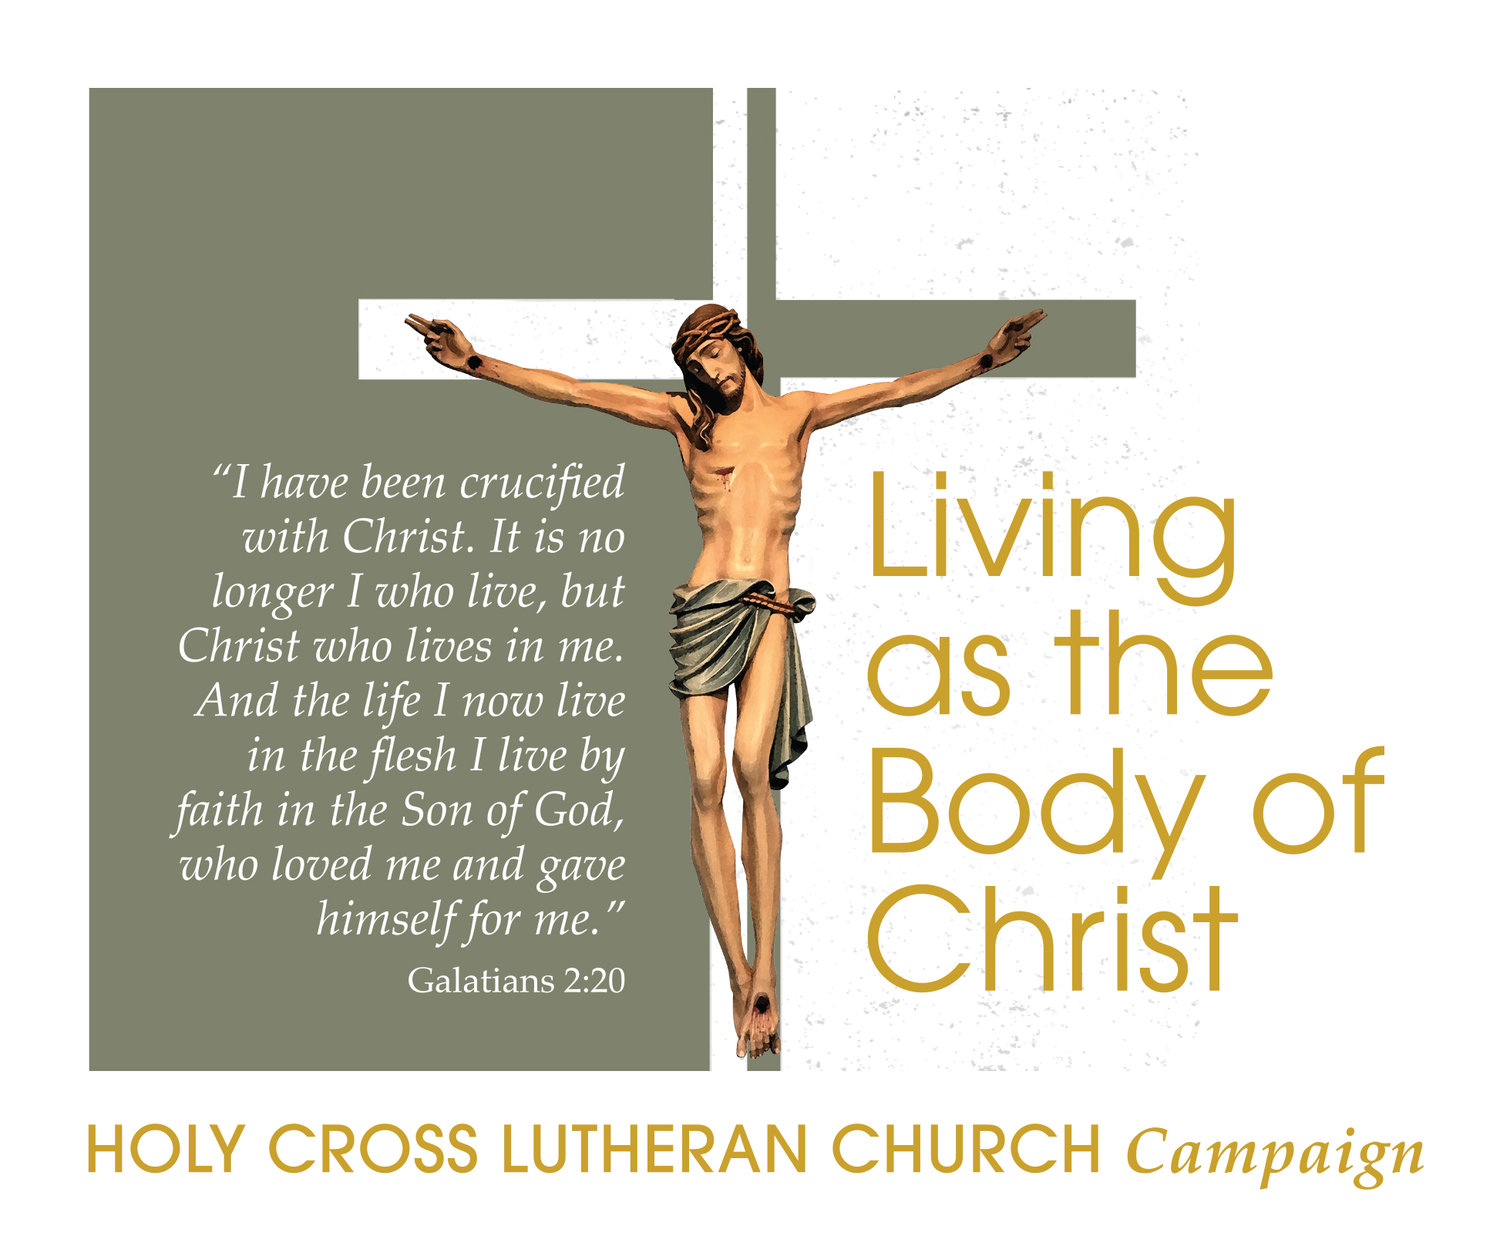 Living as the Body of Christ